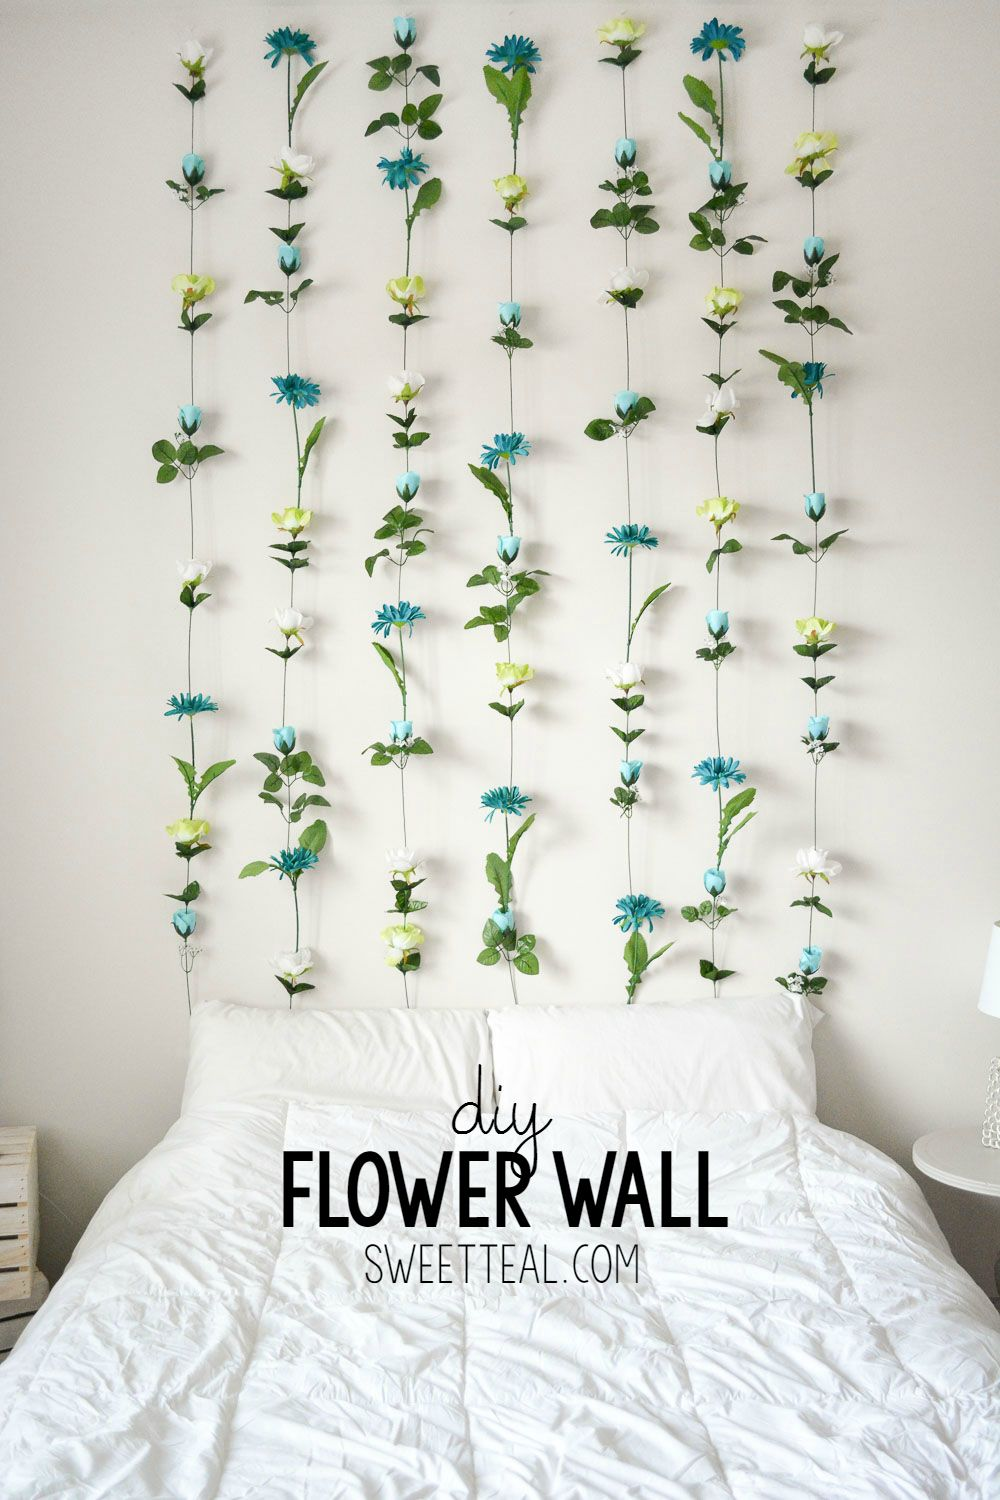 Diy Flower Wall Headboard Tutorial